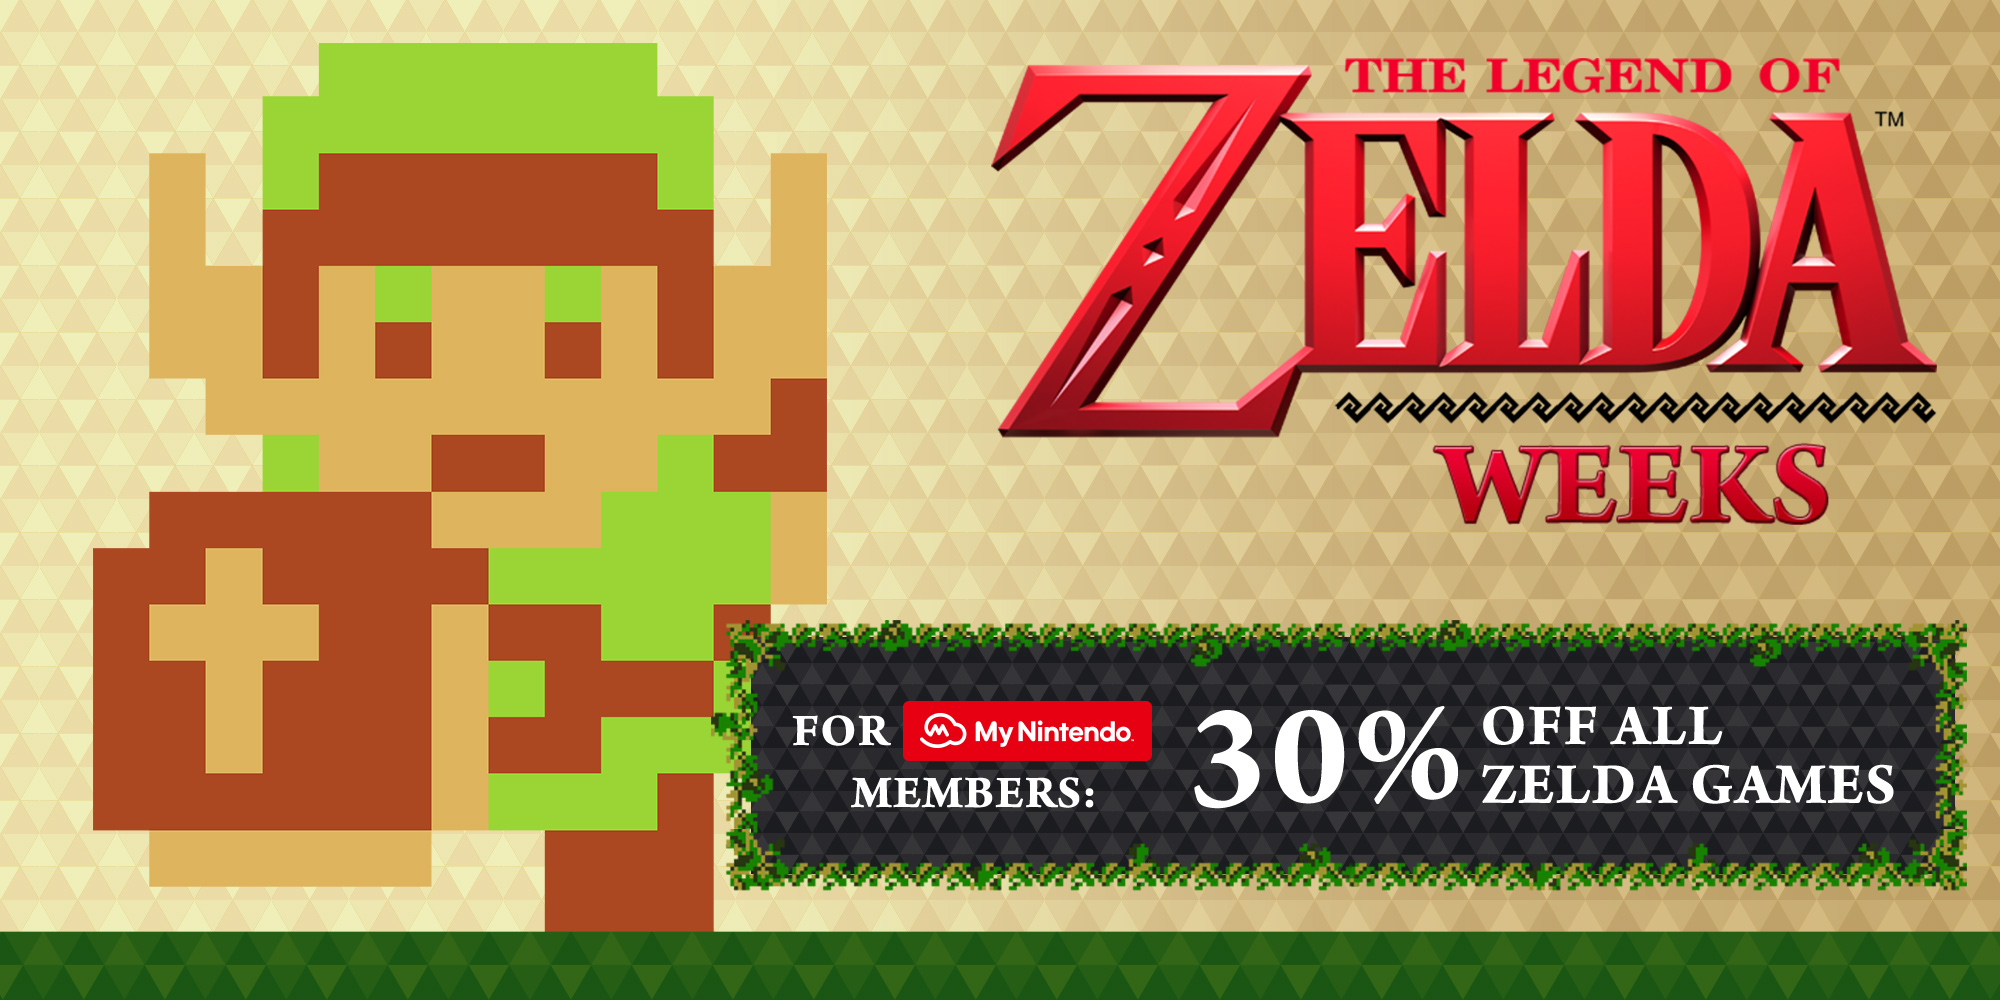 Nintendo Eshop Sale The Legend Of Zelda Weeks 2017 Sale